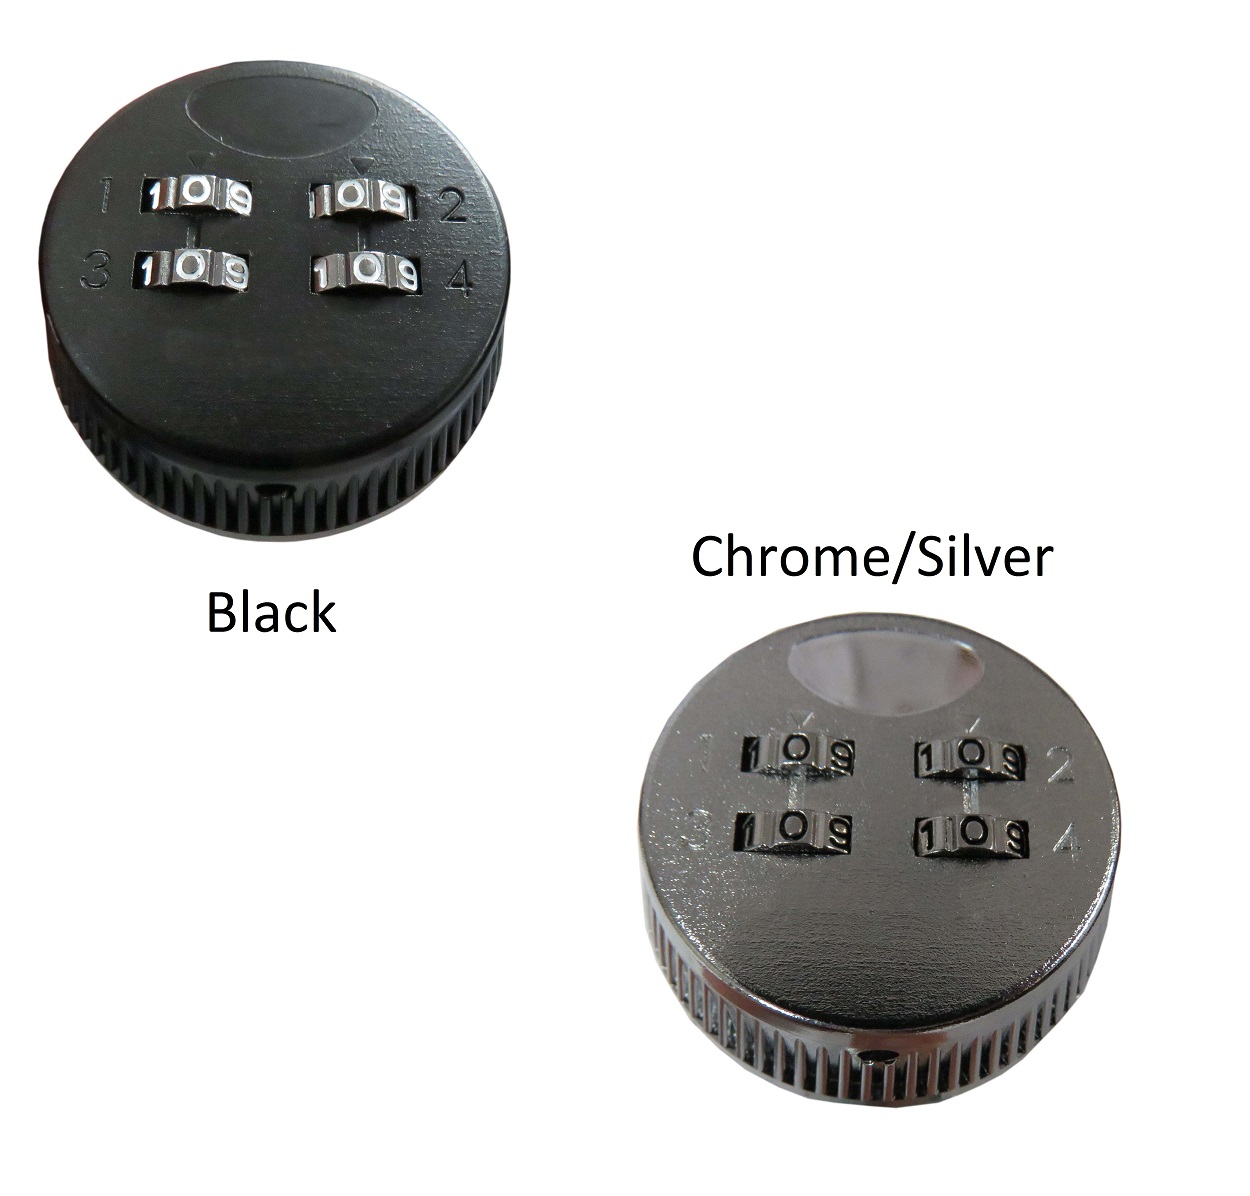 Locking Security Console Combination Lock, Chrome or Black